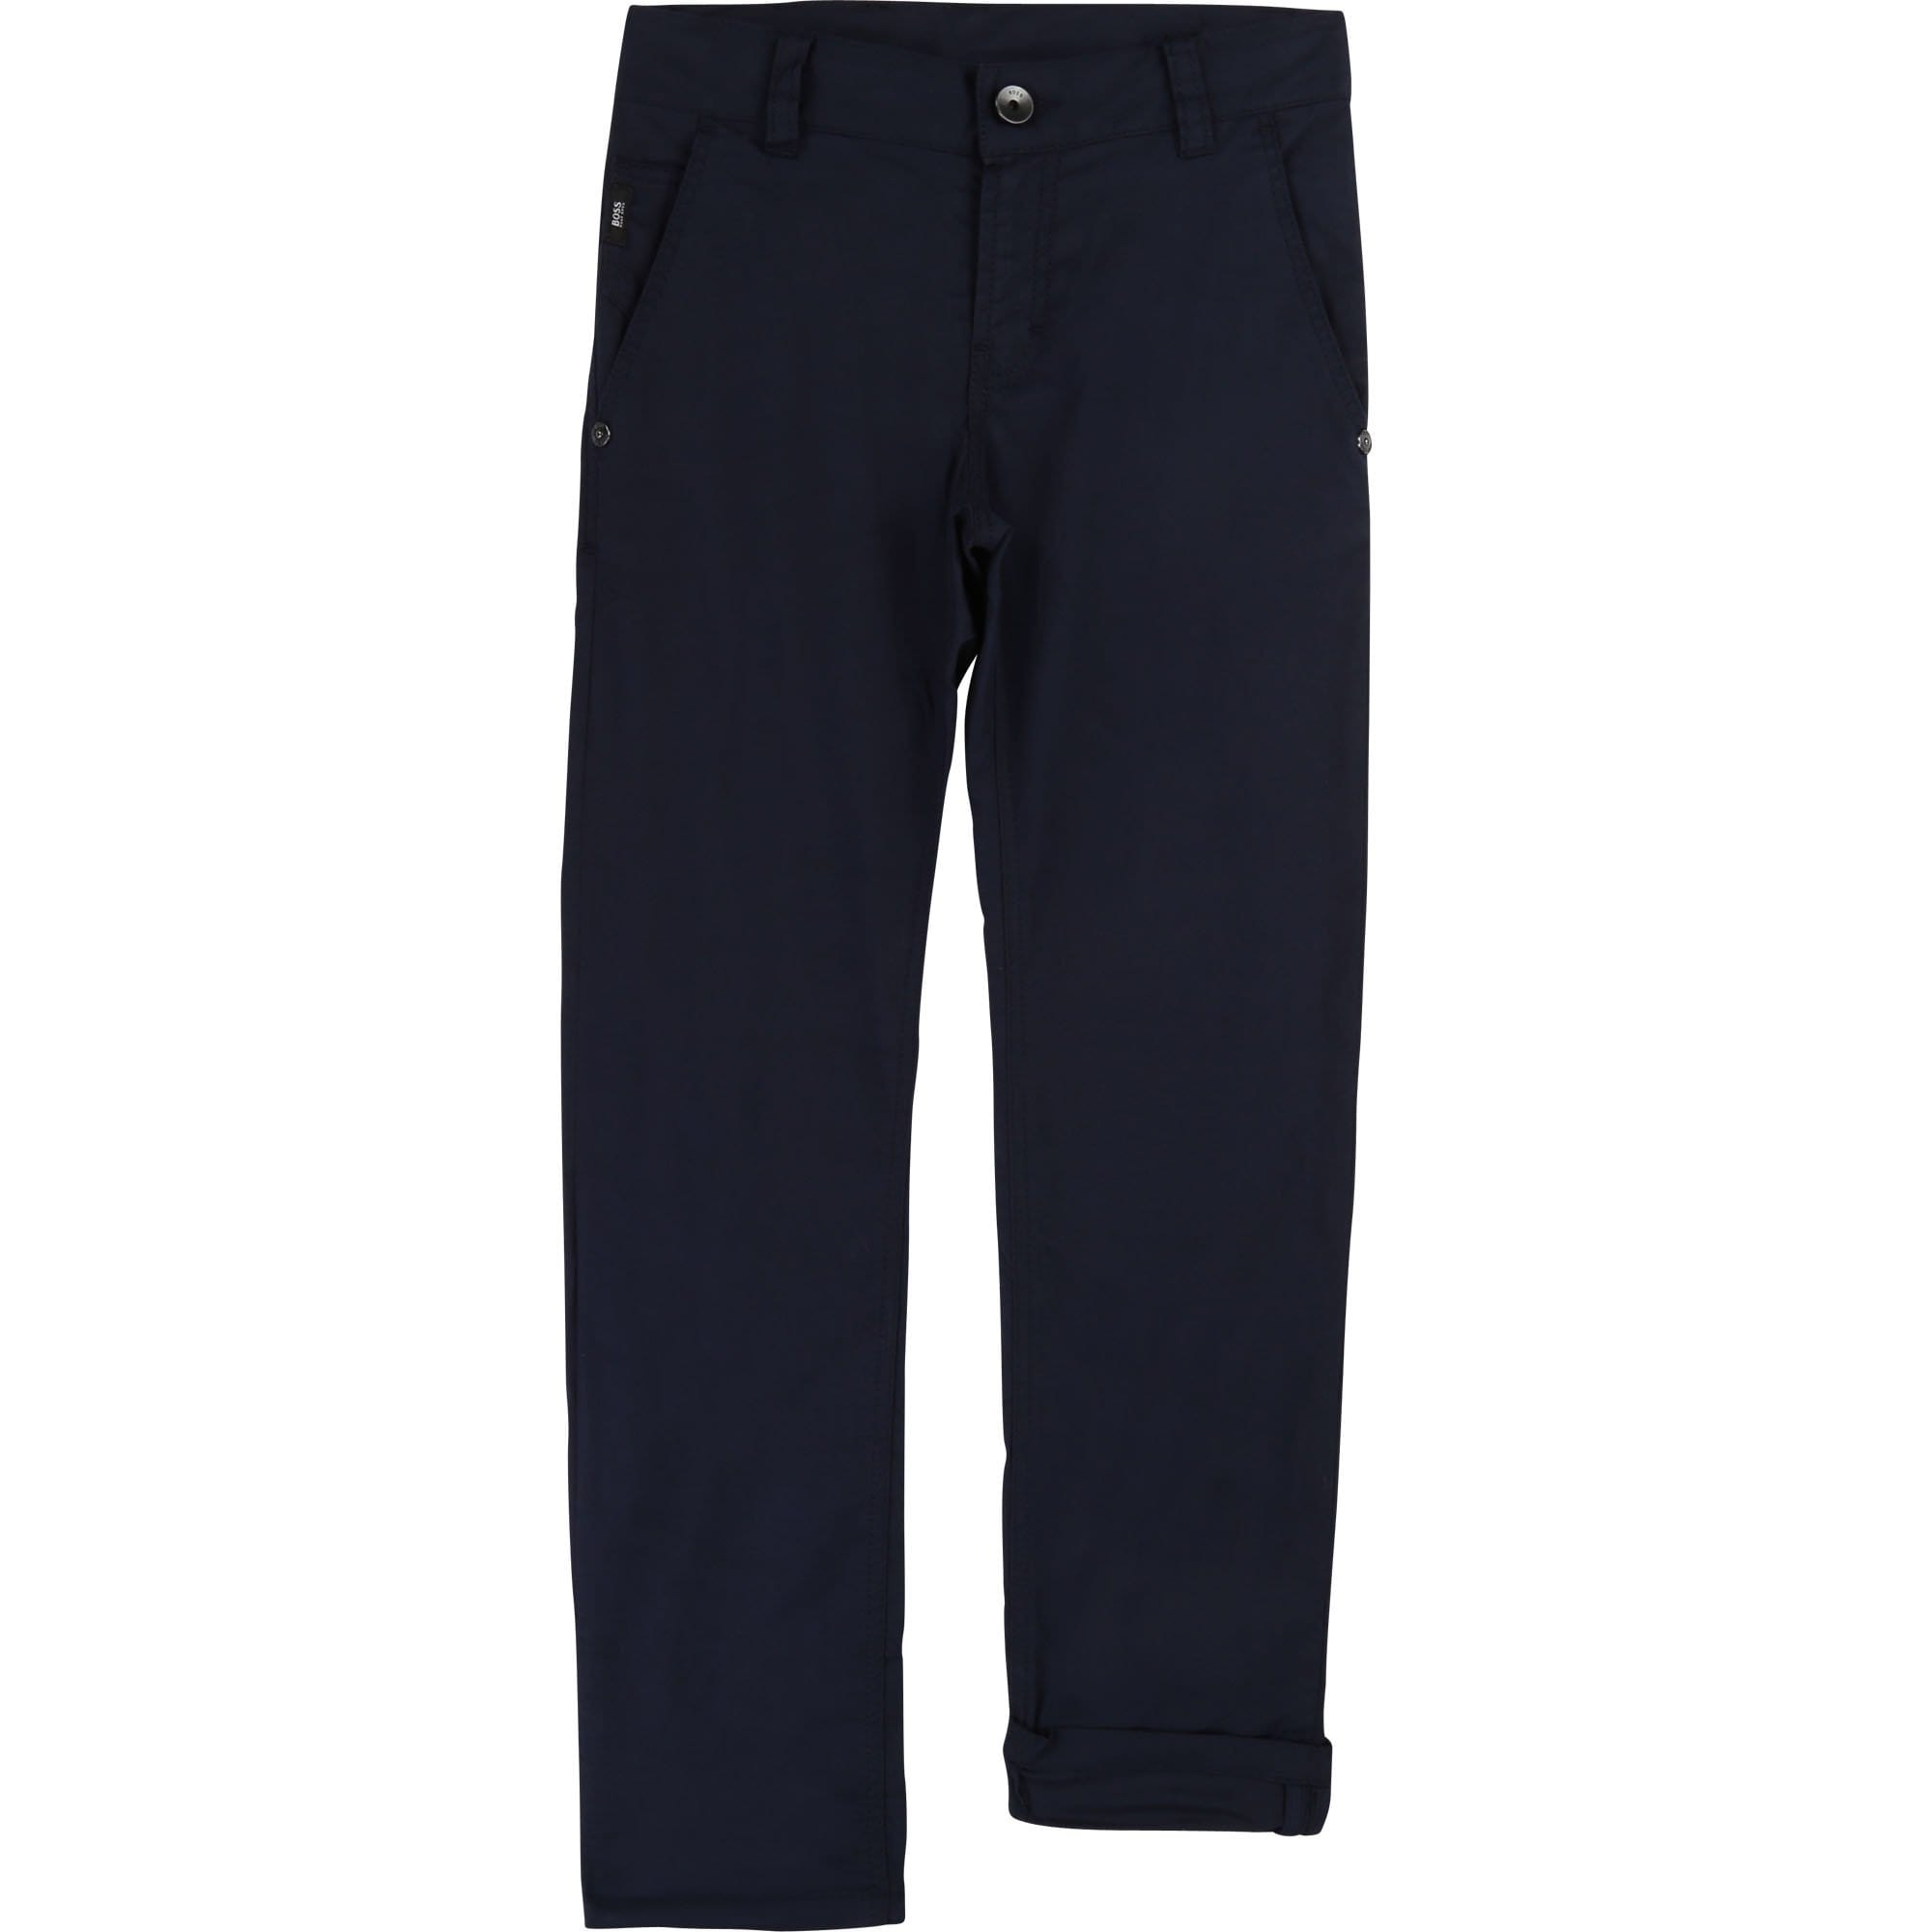 Hugo Boss Chino Pants Navy